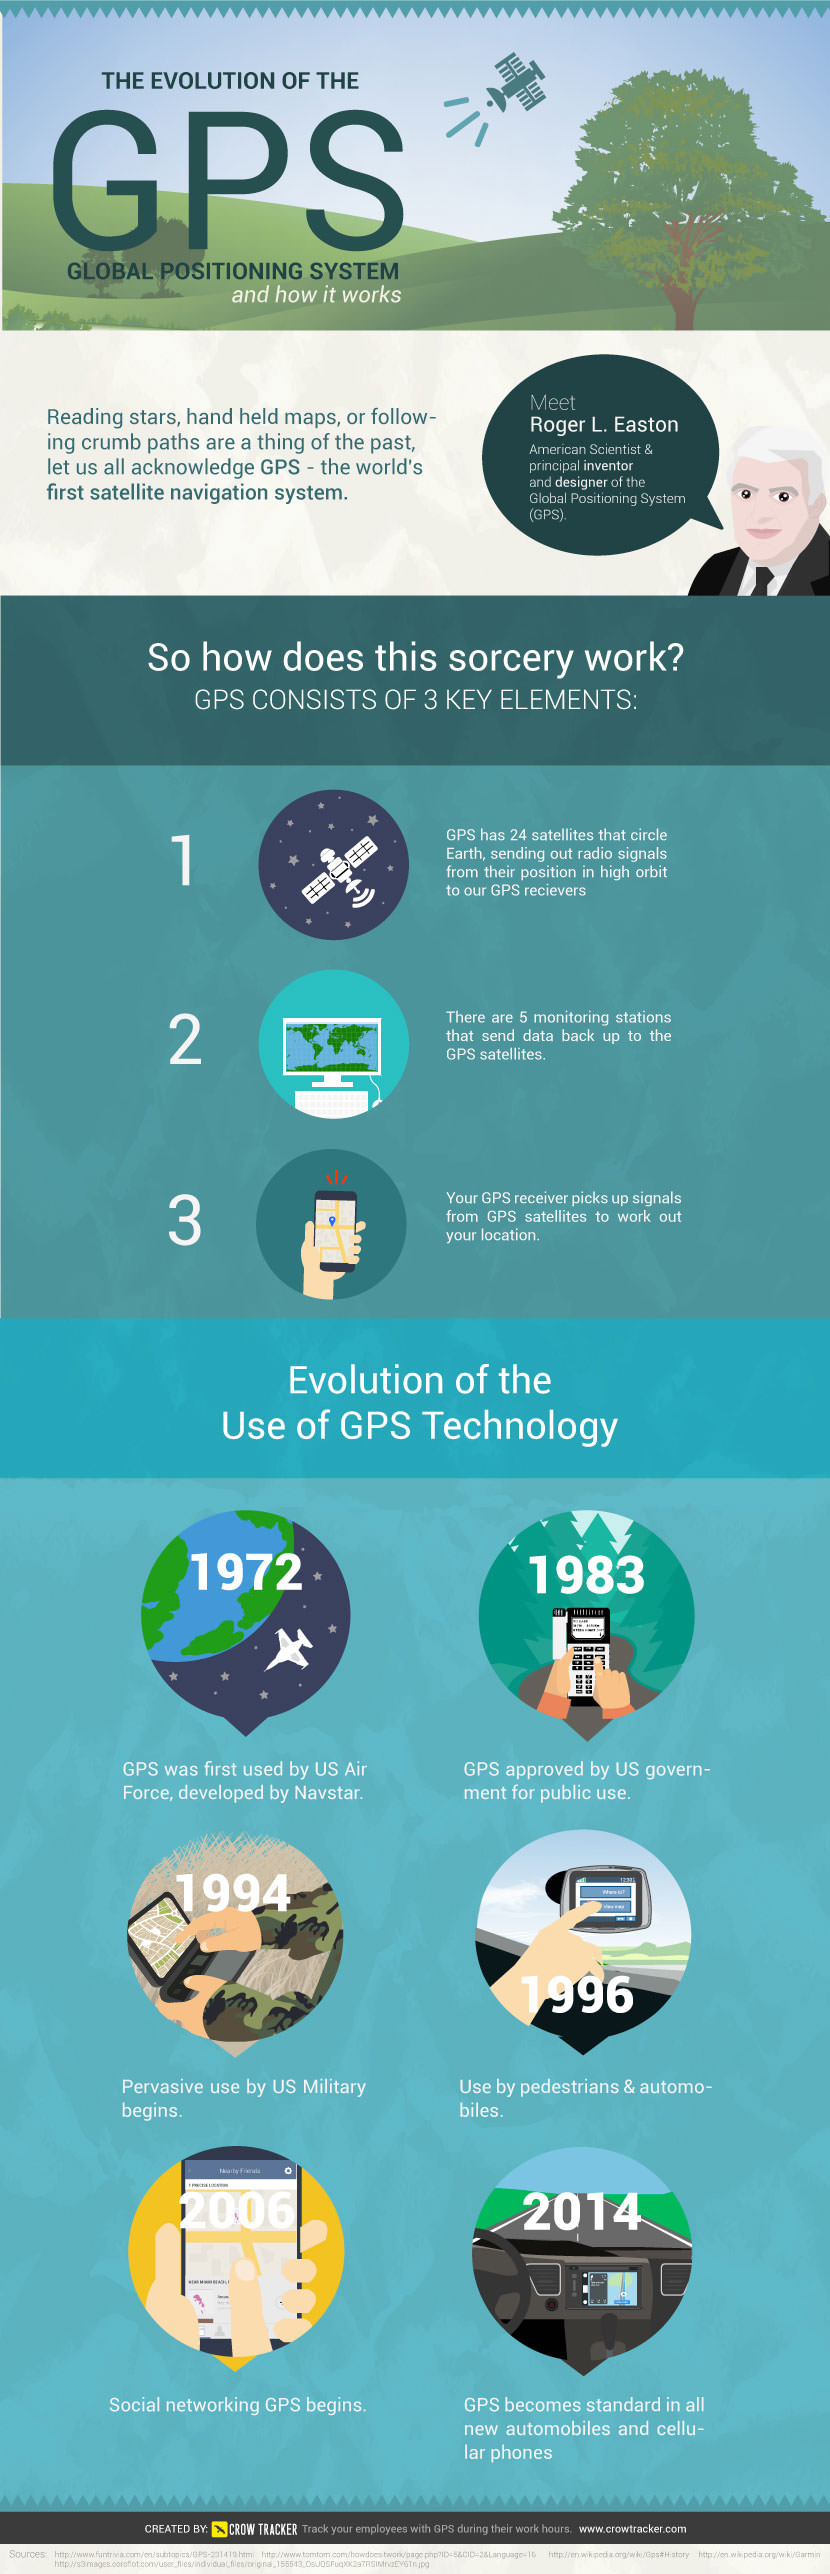 evoloution-of-gps-infographic